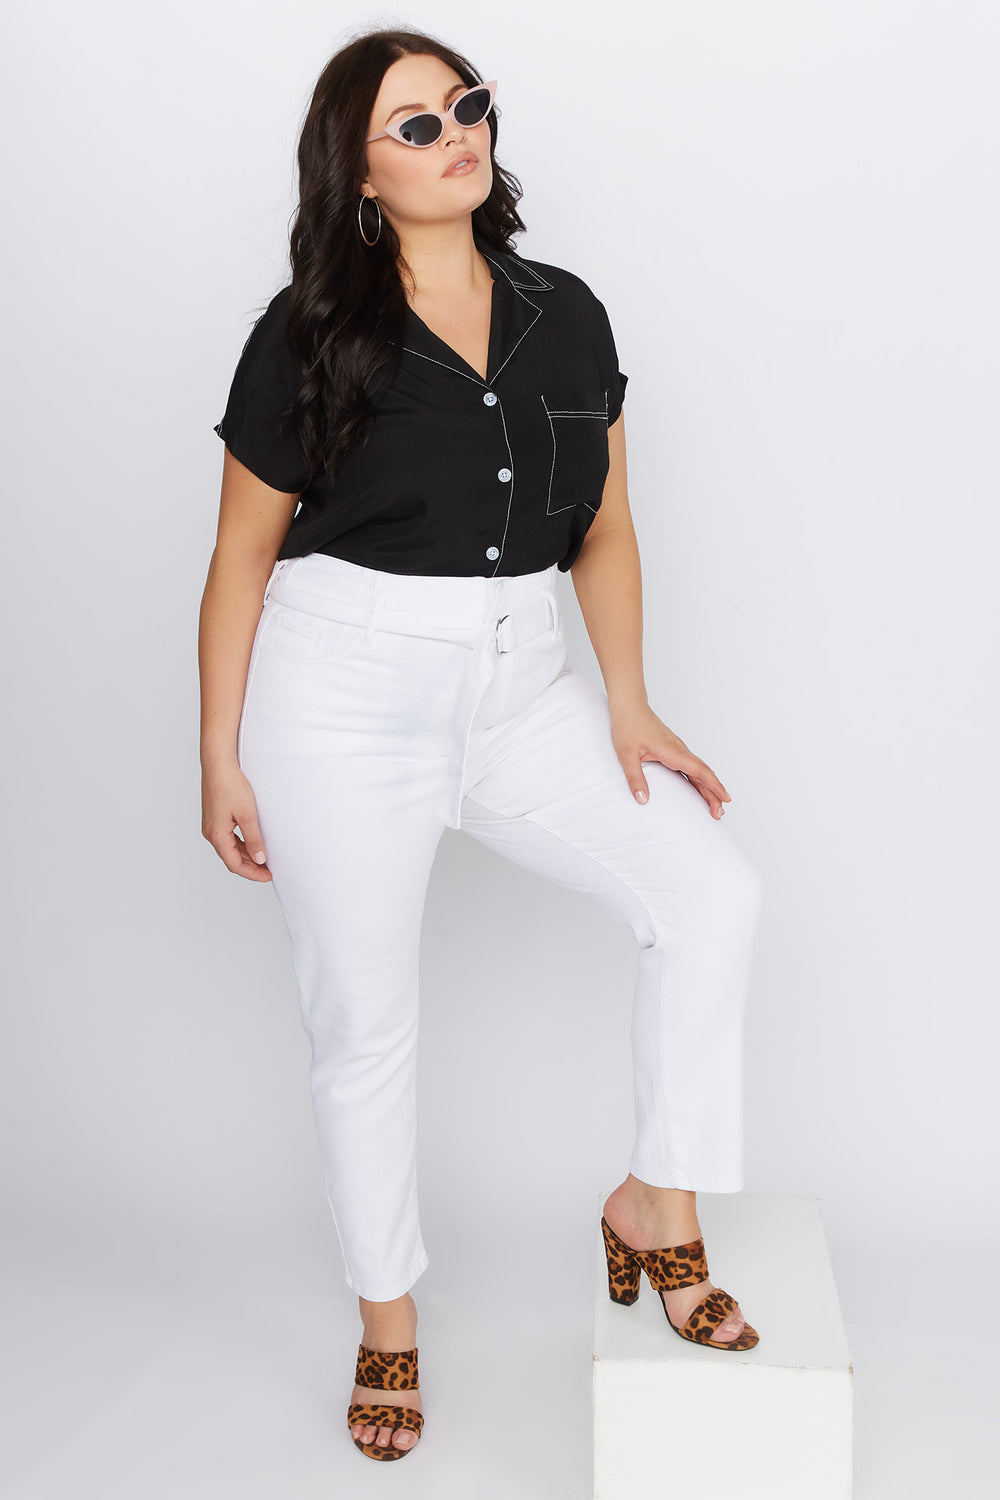 Refuge Plus Size White Self Belt Skinny Jean White